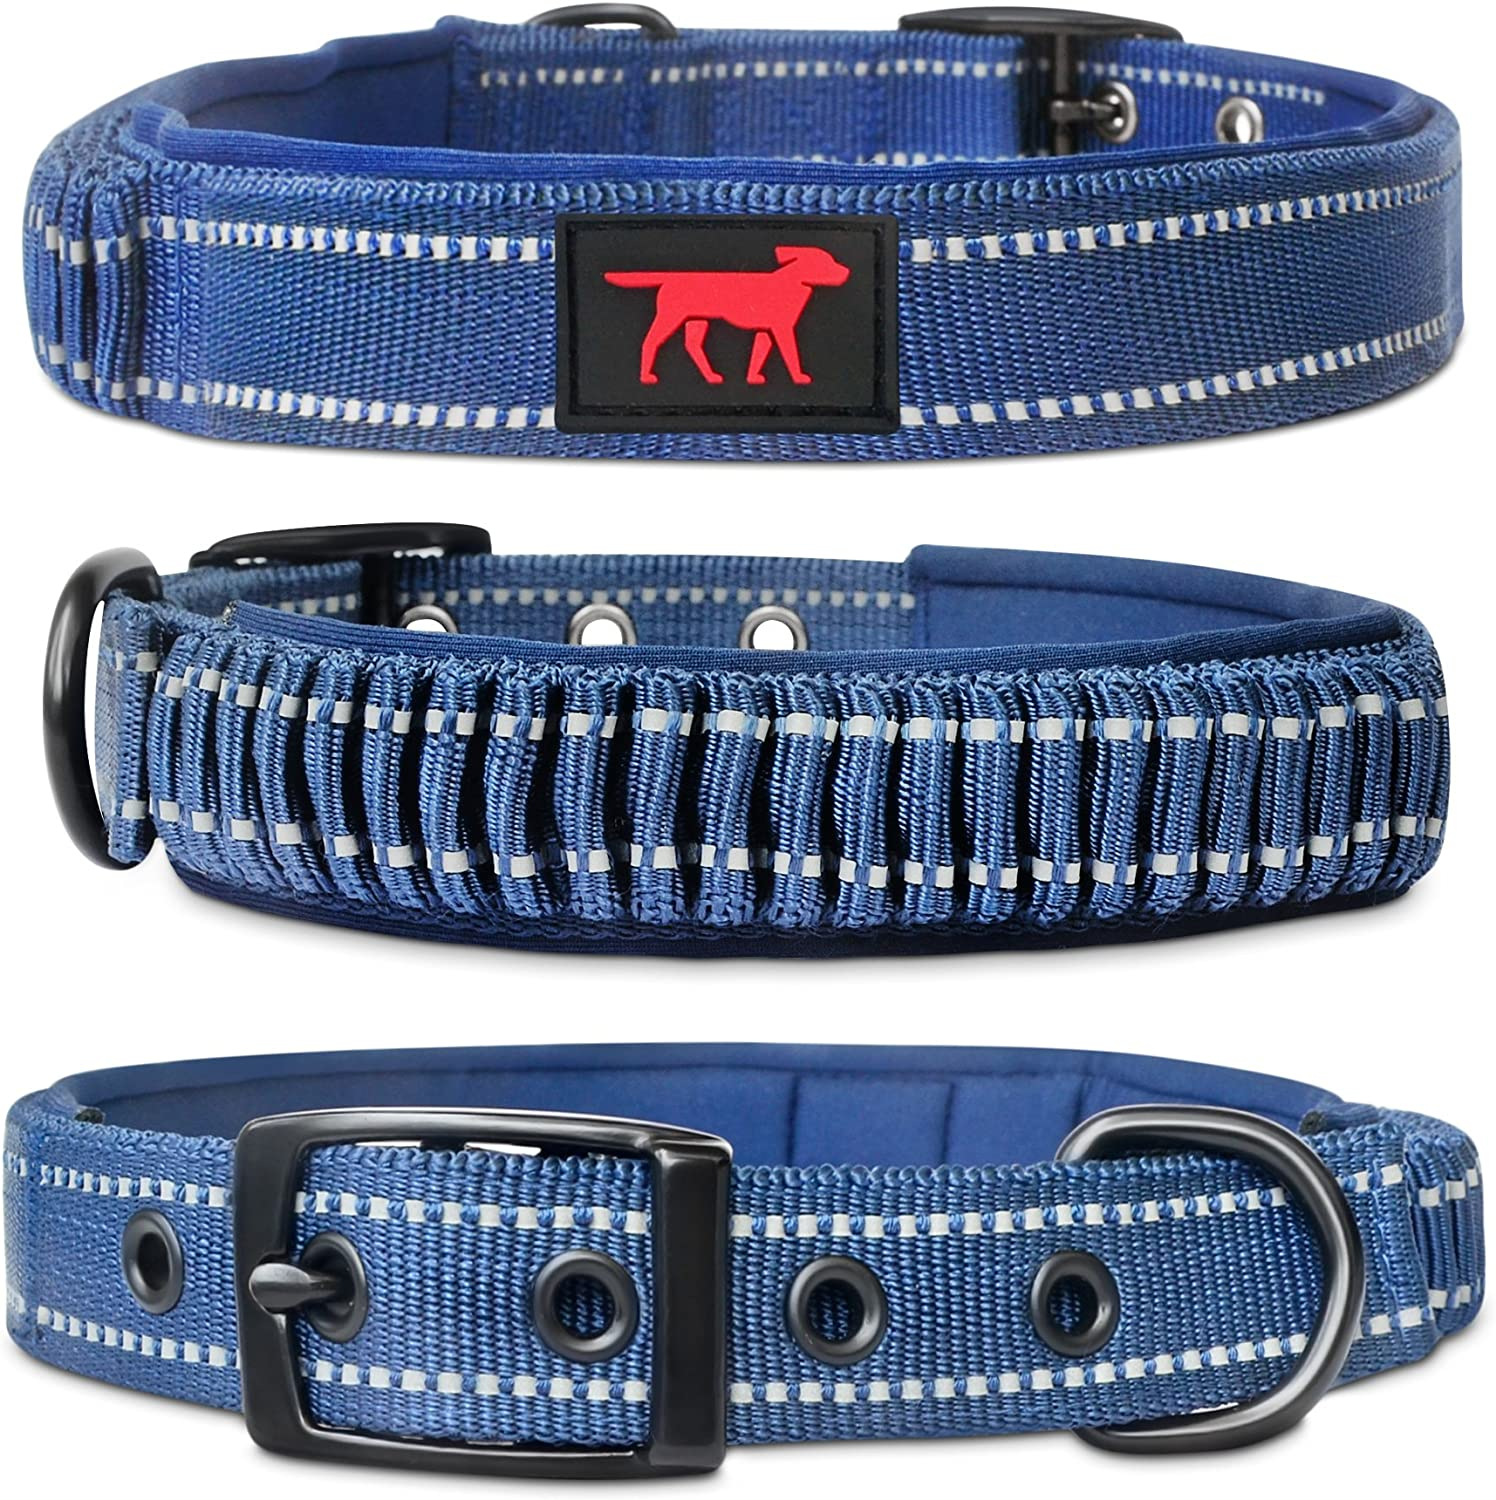 Tuff Pupper Heavy Duty Dog Collar Review